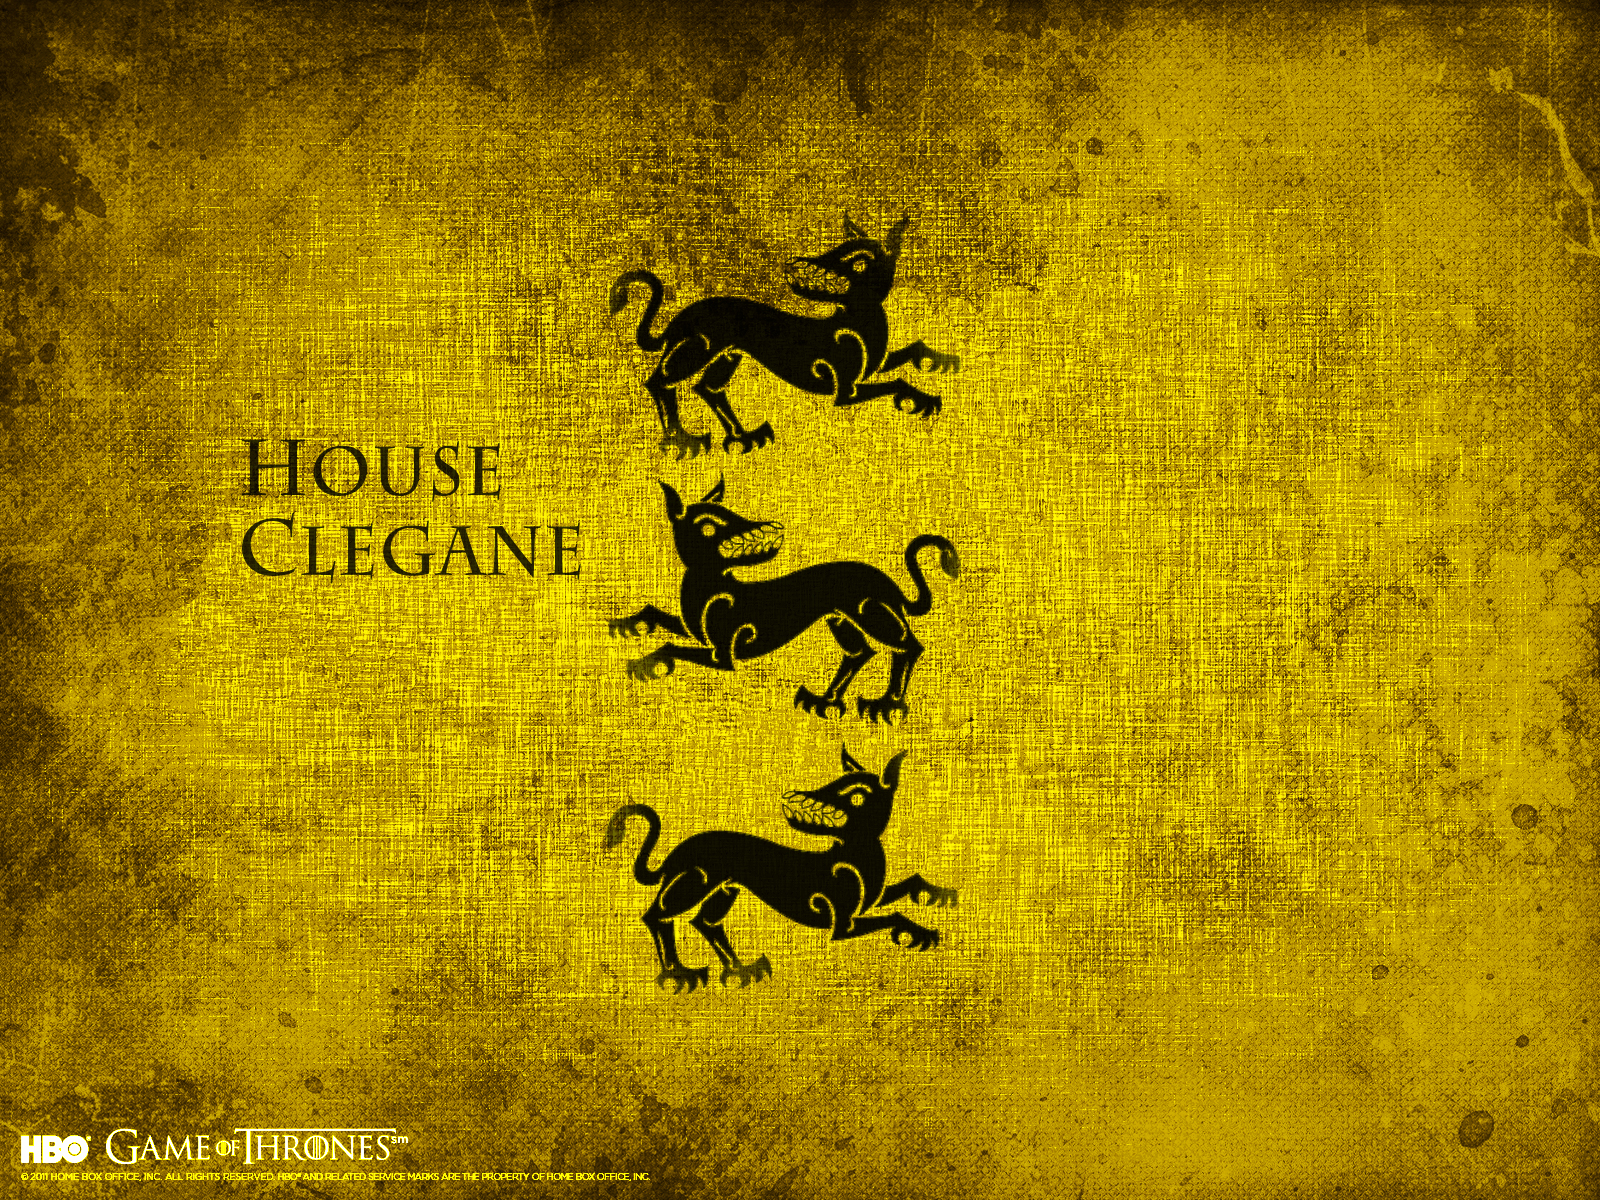 Game Of Thrones Wallpaper Game Of Thrones Clegane 27074 Hd